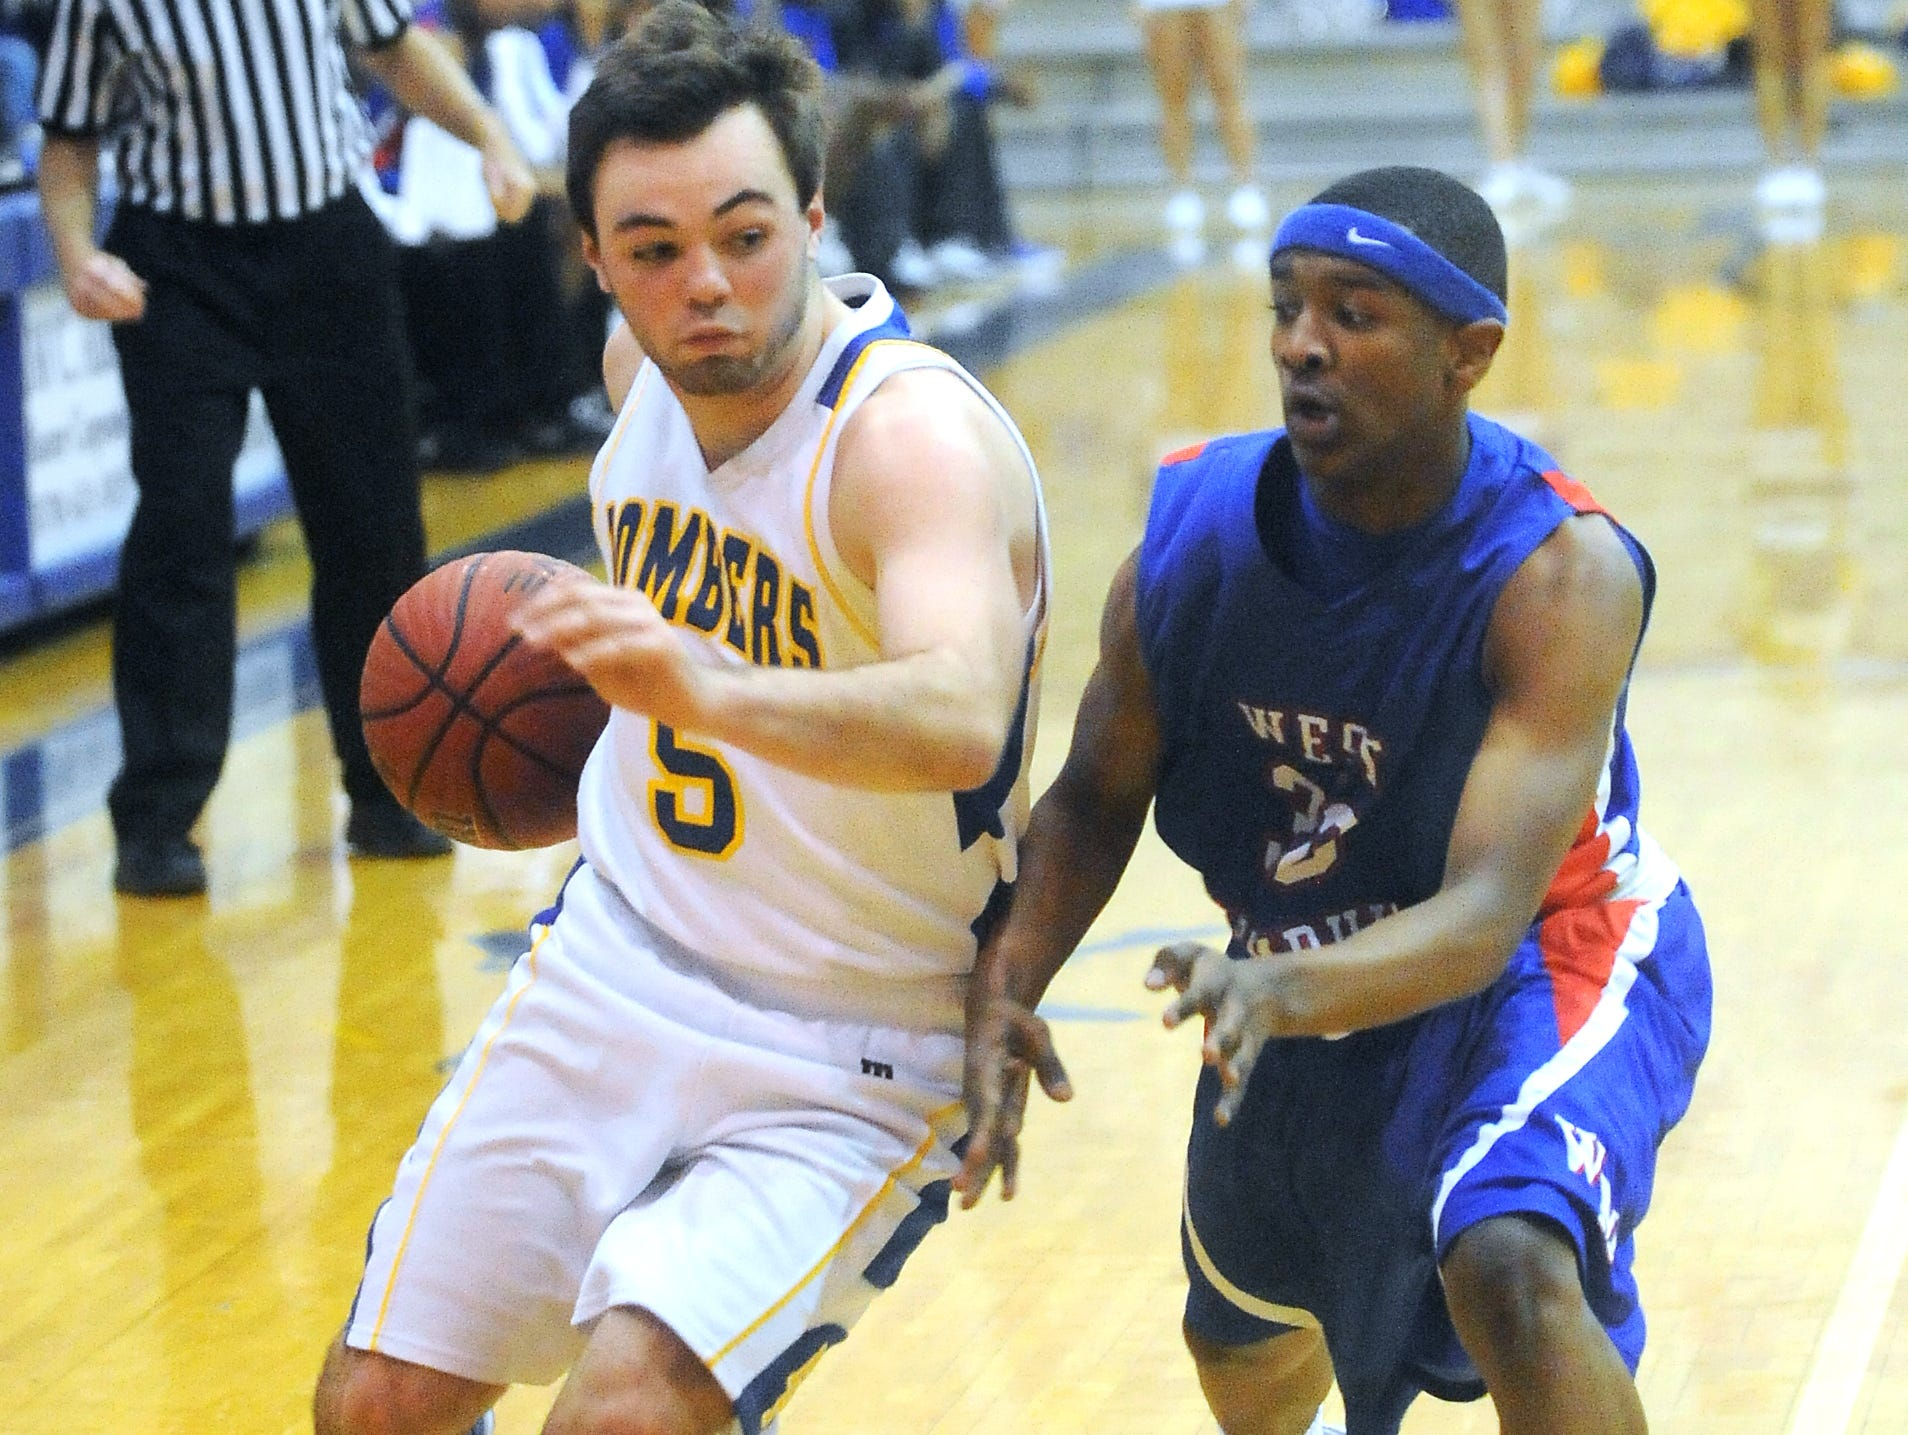 Mountain Home's Preston Groesbeck drives past a West Memphis defender during a game this past season at The Hangar. Groesbeck signed a National Letter of Intent on Wednesday to play at North Arkansas College in Harrison.